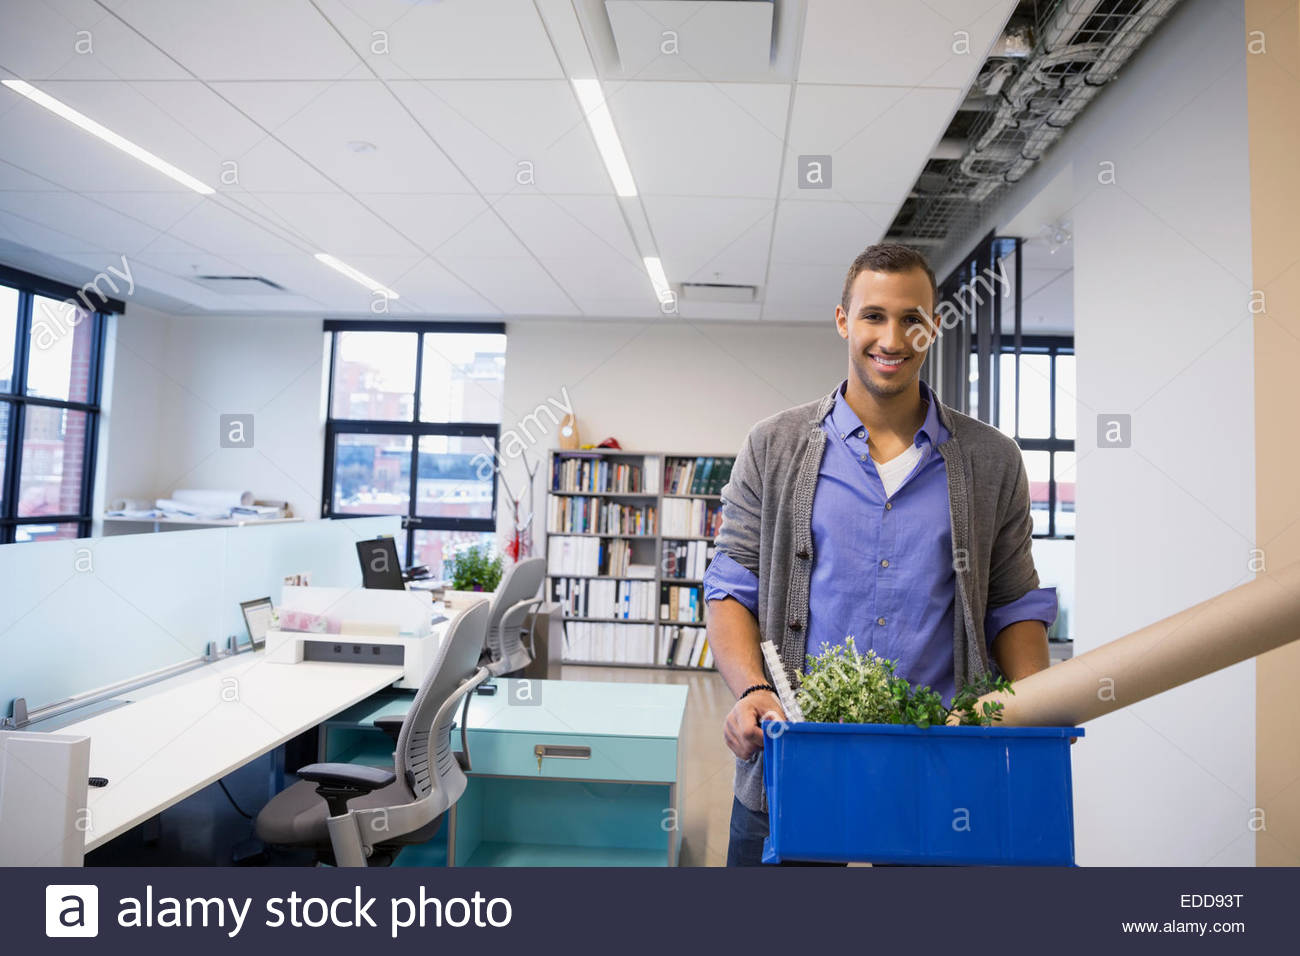 Portrait of smiling businessman carrying belongings in office - Stock Image